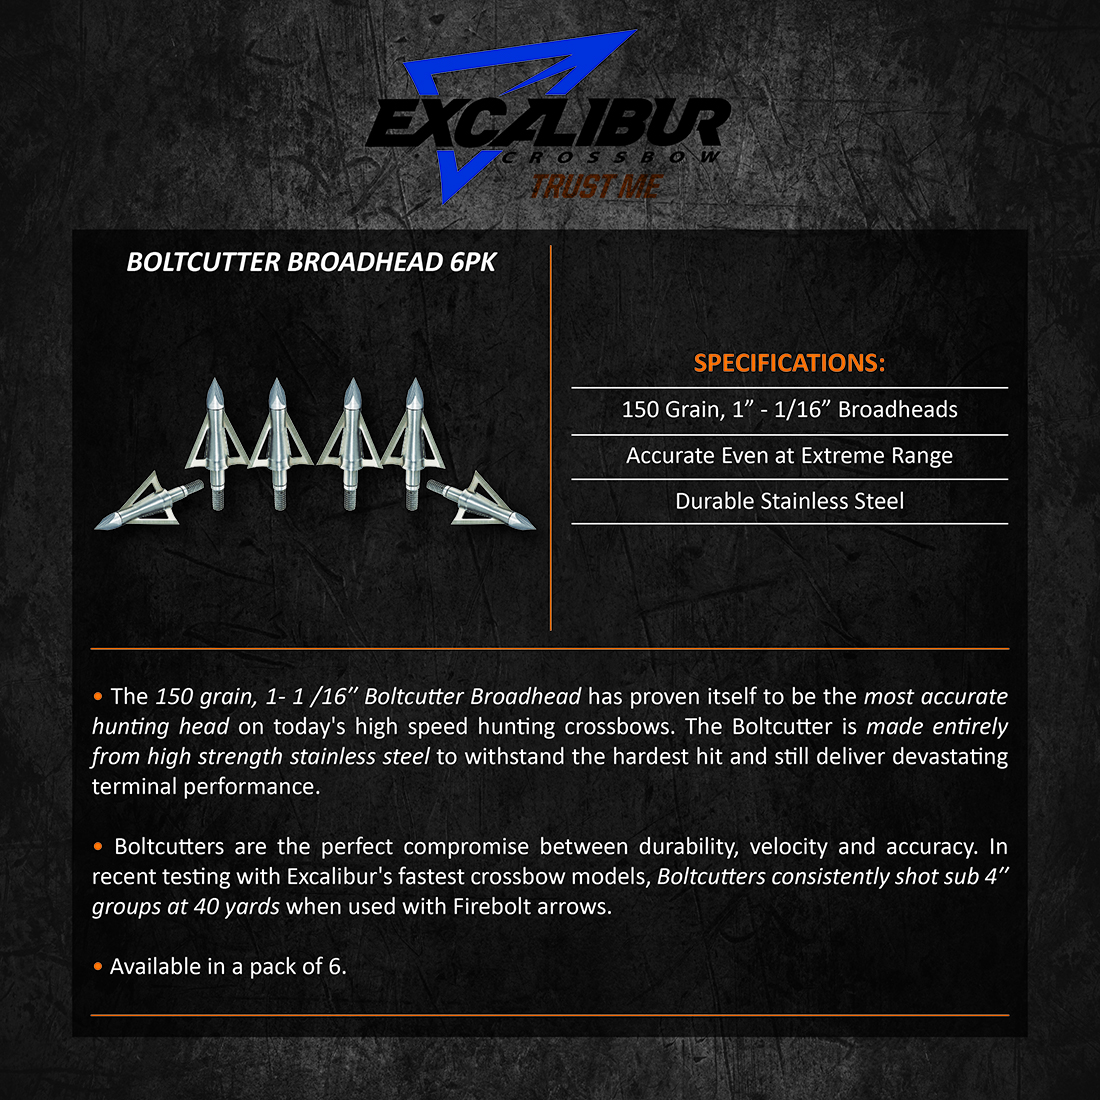 Excalibur_BoltCutter_Broadhead_6pk_Product_Description